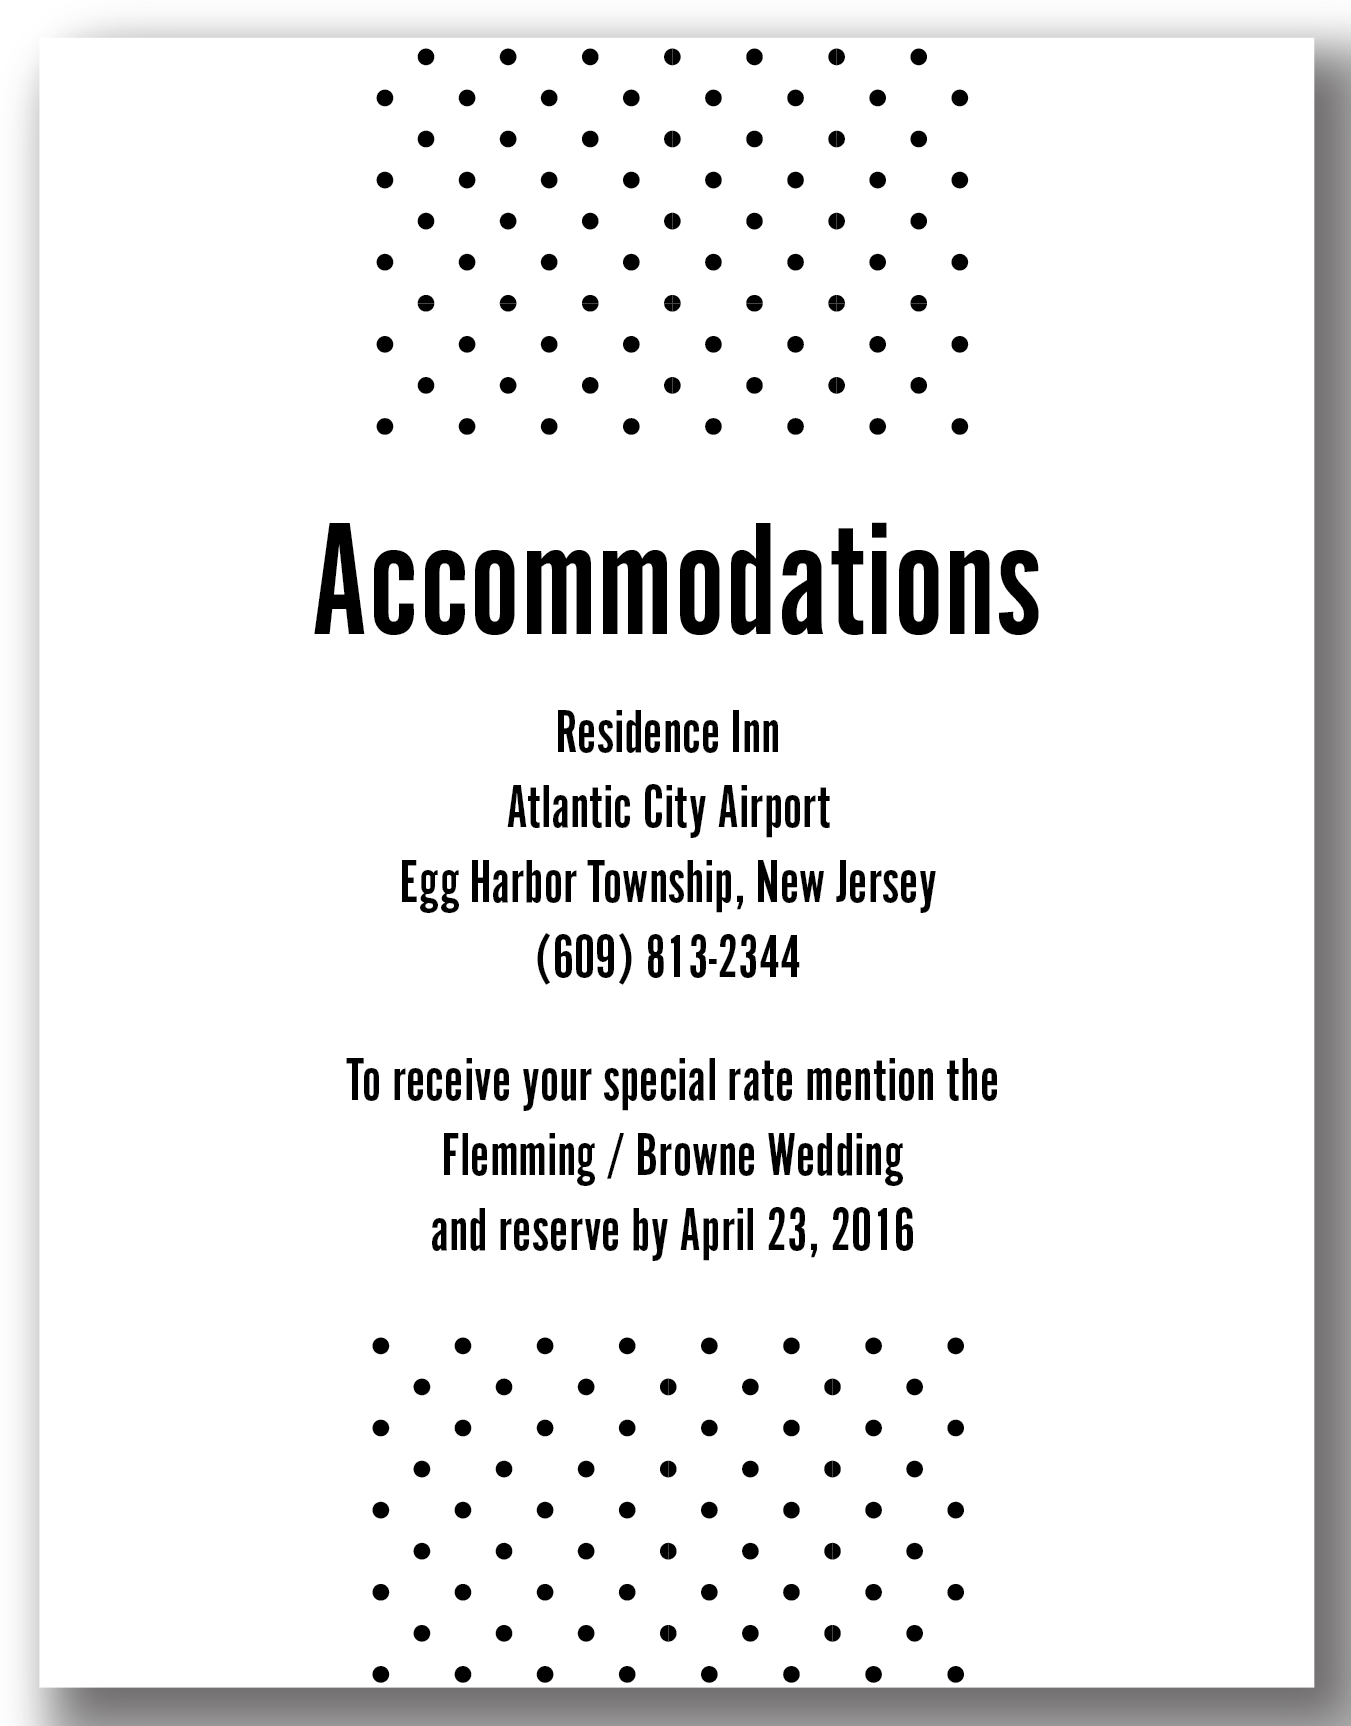 The Happy Valley - Accommodation Card